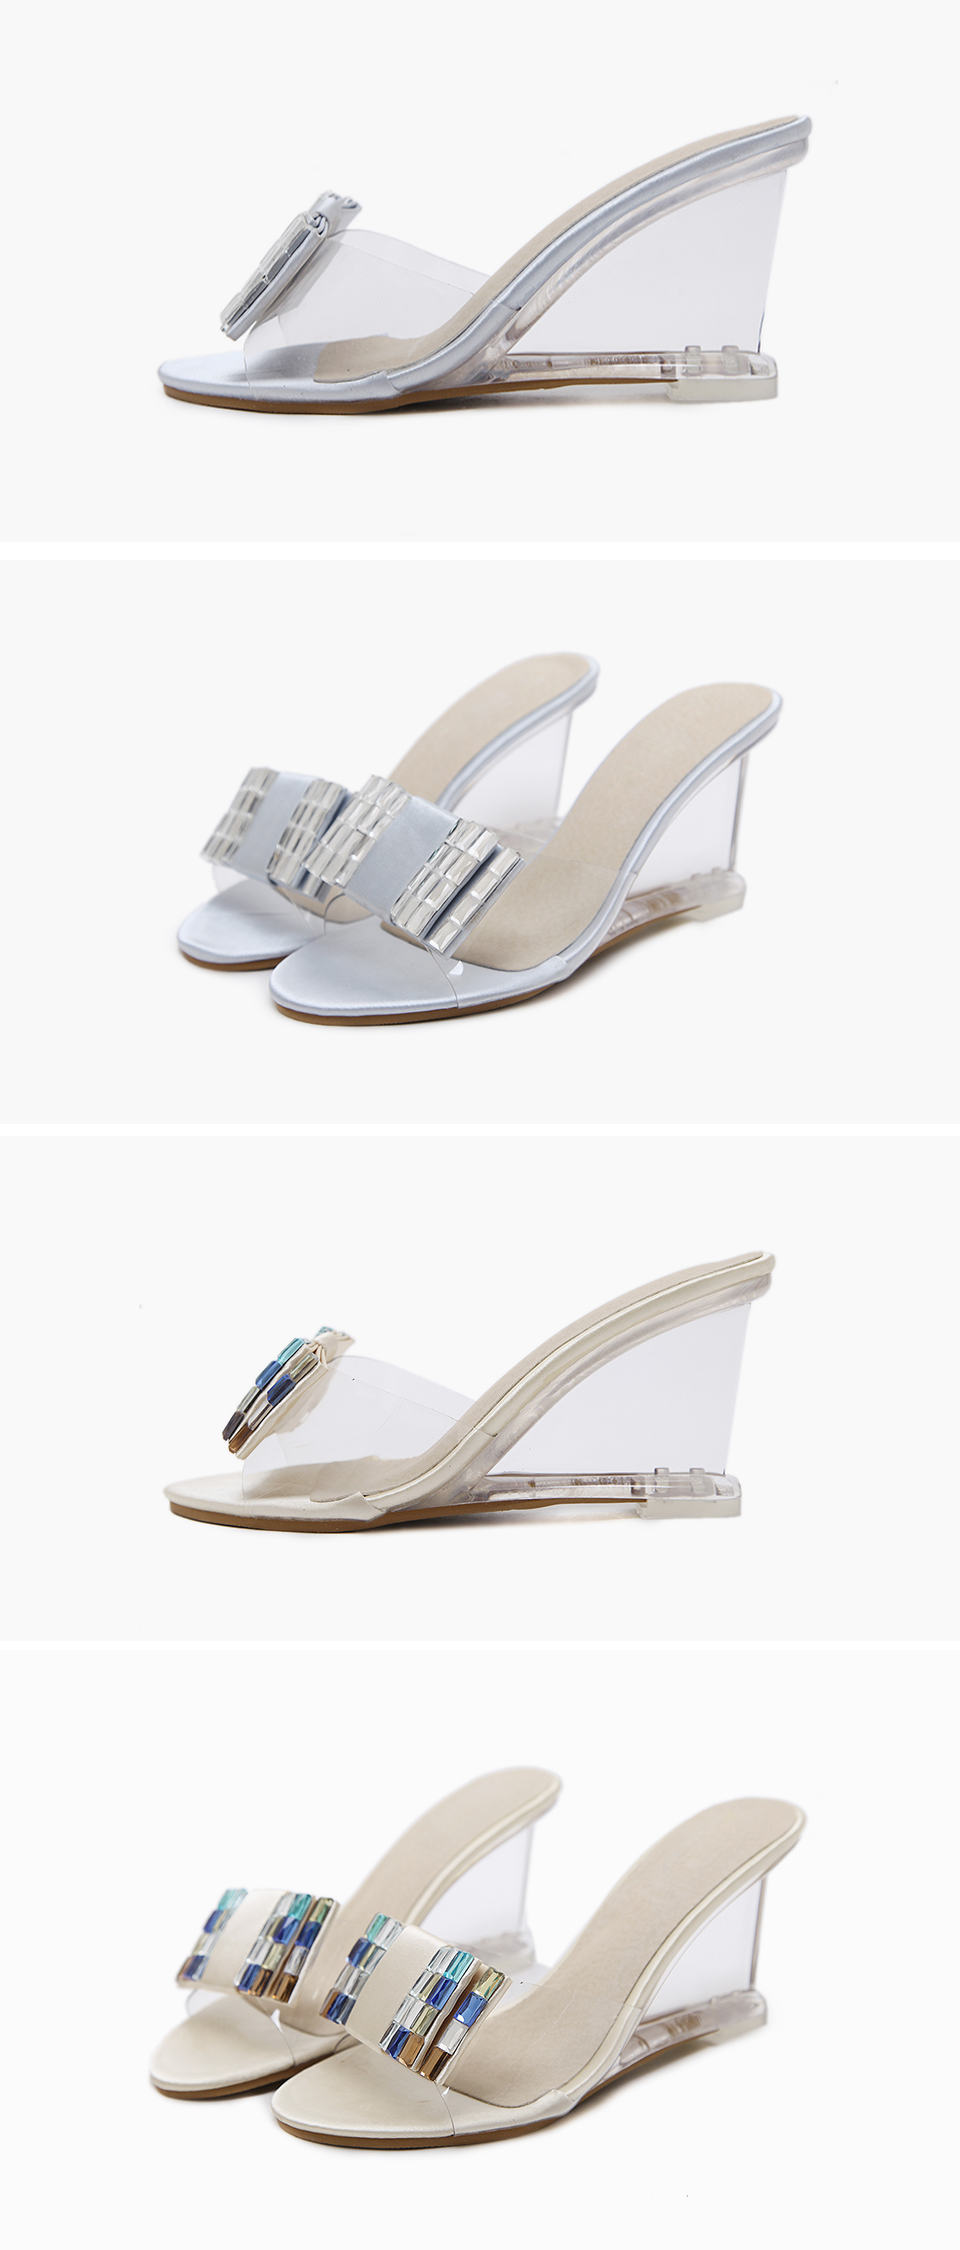 4 wedges shoes